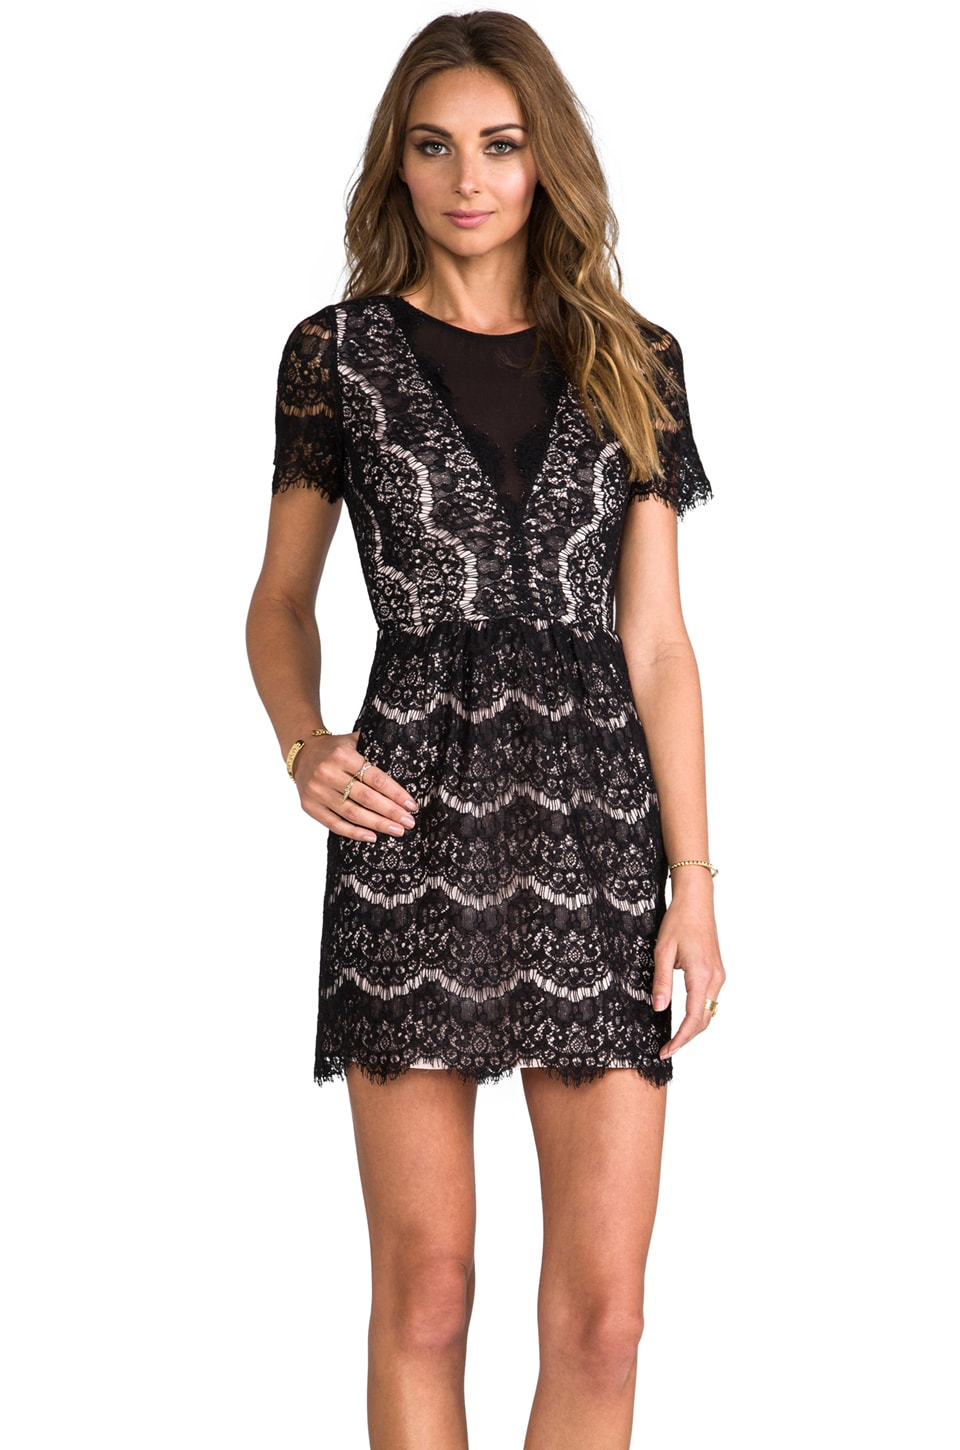 Dolce Vita Saurus Eyelash Lace Dress in Black